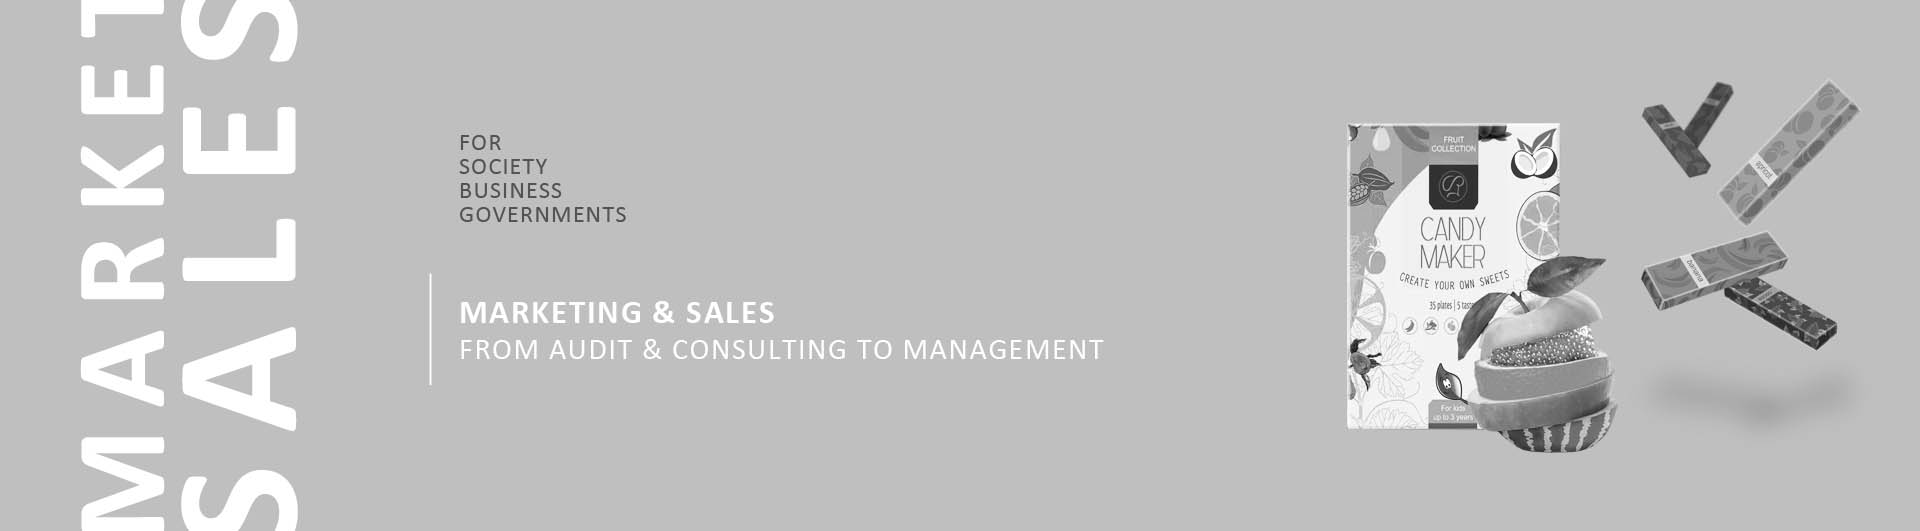 marketing consulting and management